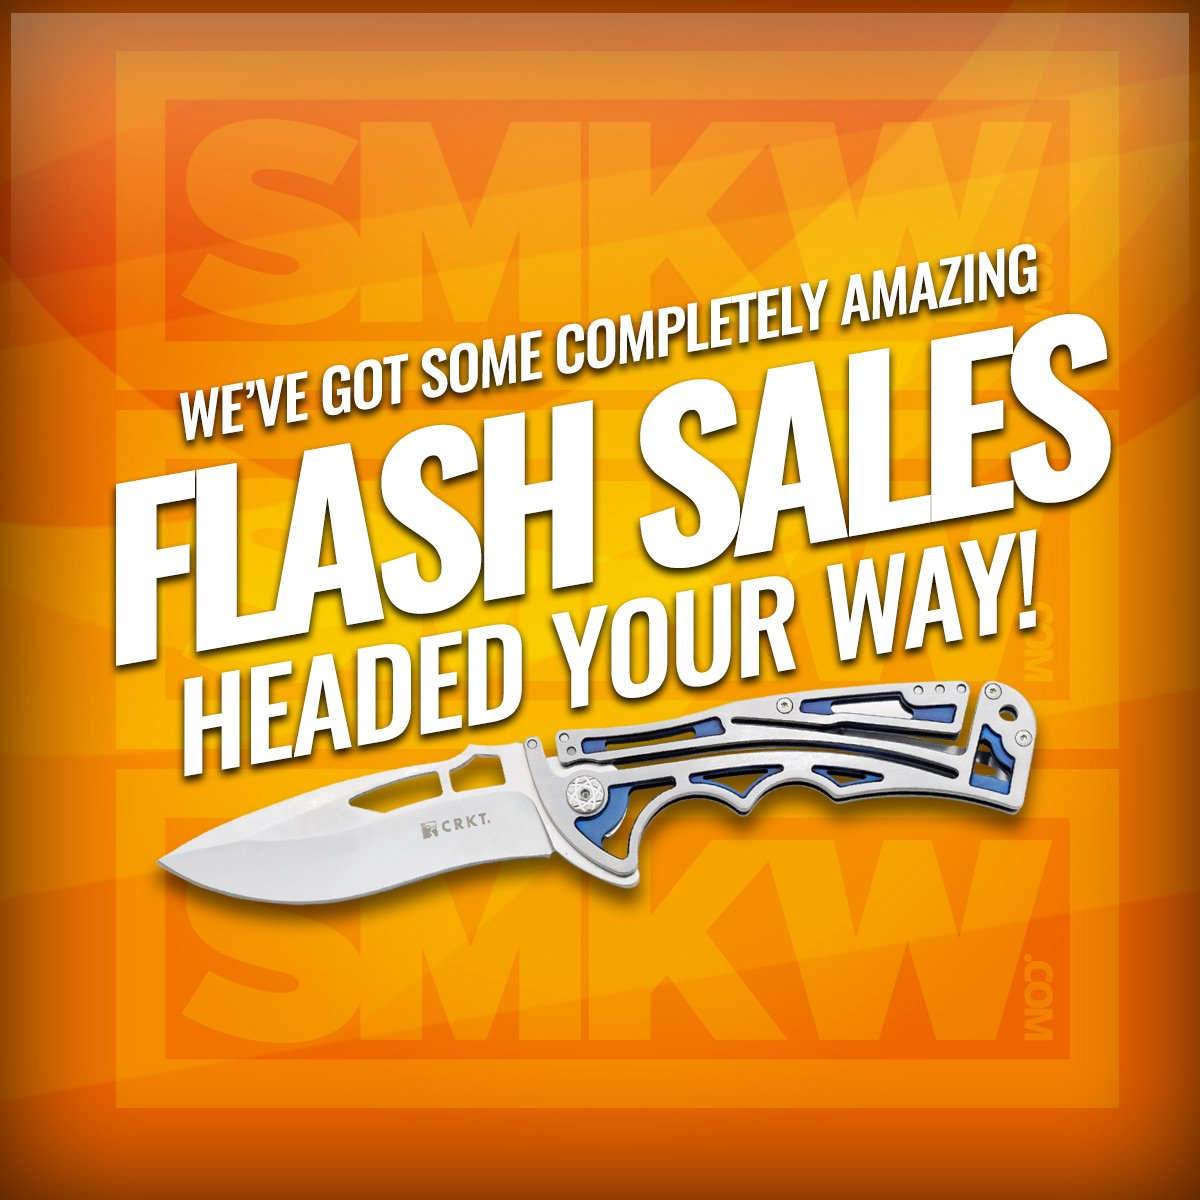 Flash Sales at SMKW.com